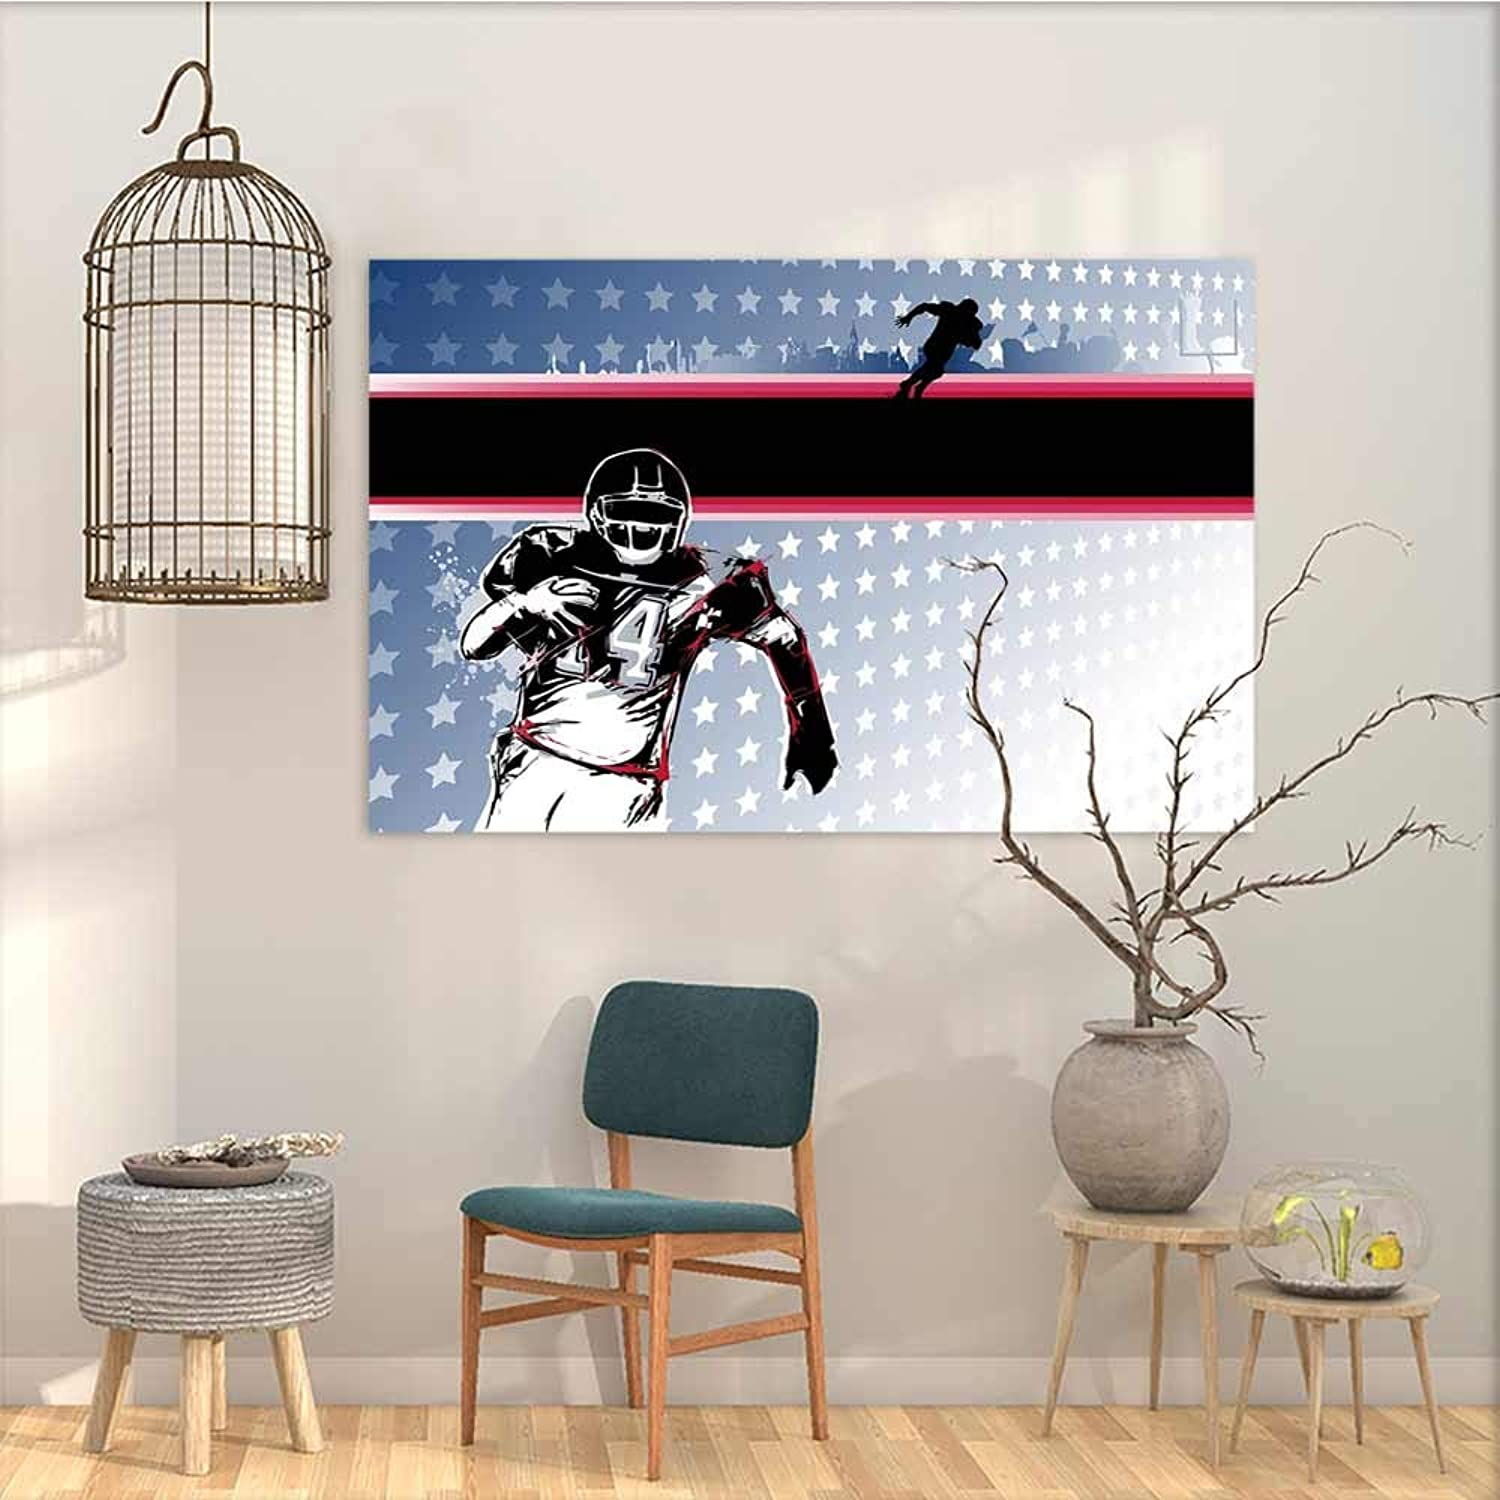 Oncegod Sticker for Decoration Americana Decor Baseball American Football Player Running in The Field with Stars Pattern Modern Decorative Artwork Multicolor W47 xL31